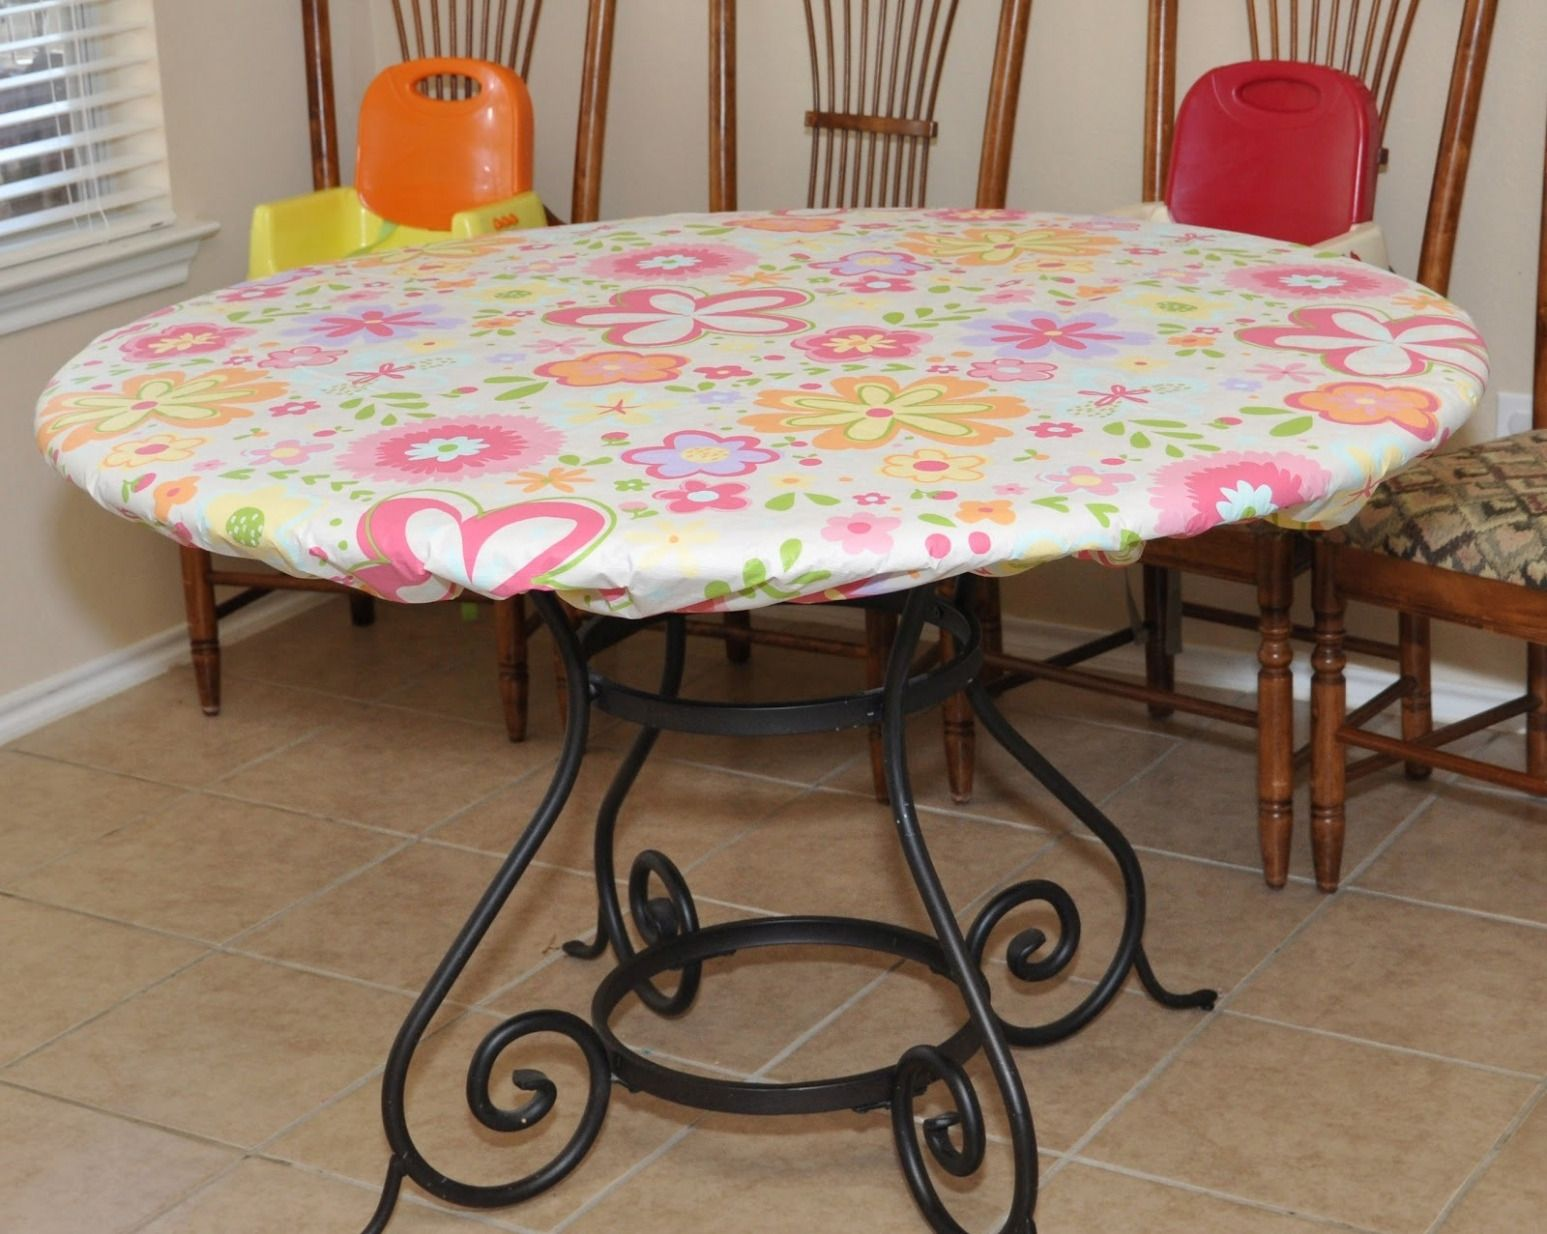 Superieur 100+ Round Plastic Table Covers With Elastic   Cool Modern Furniture Check  More At Http://livelylighting.com/round Plastic Table Covers With Elastic/